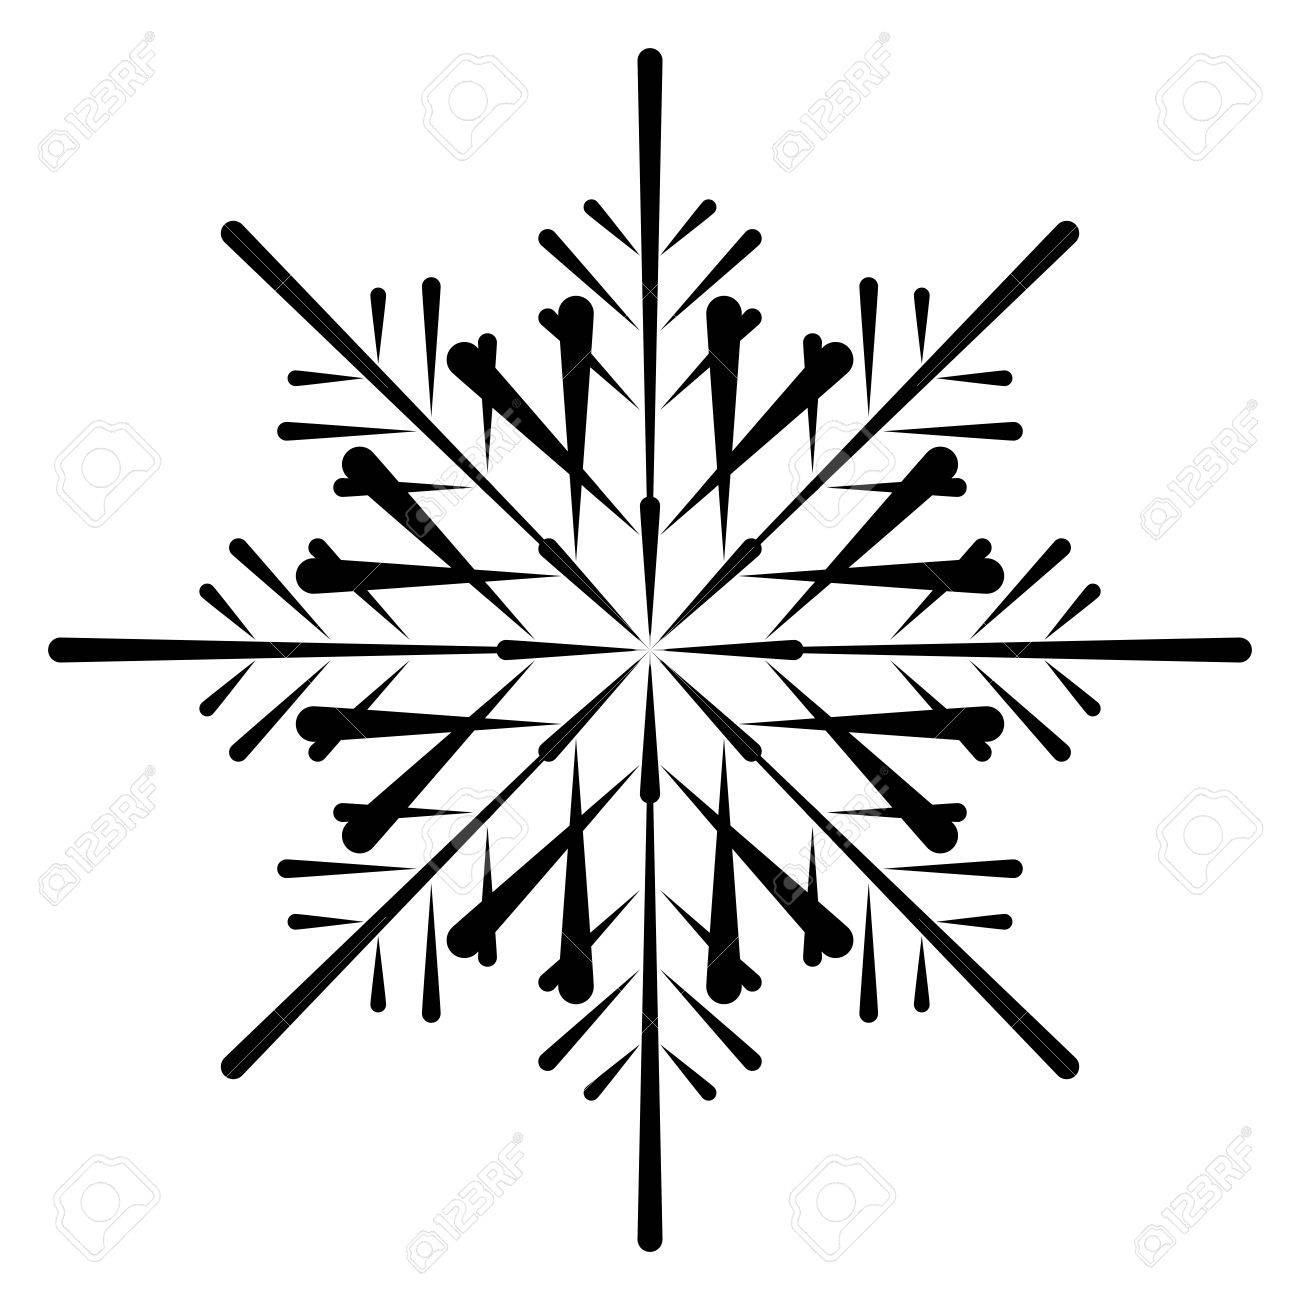 vector snowflake silhouette royalty free cliparts vectors and